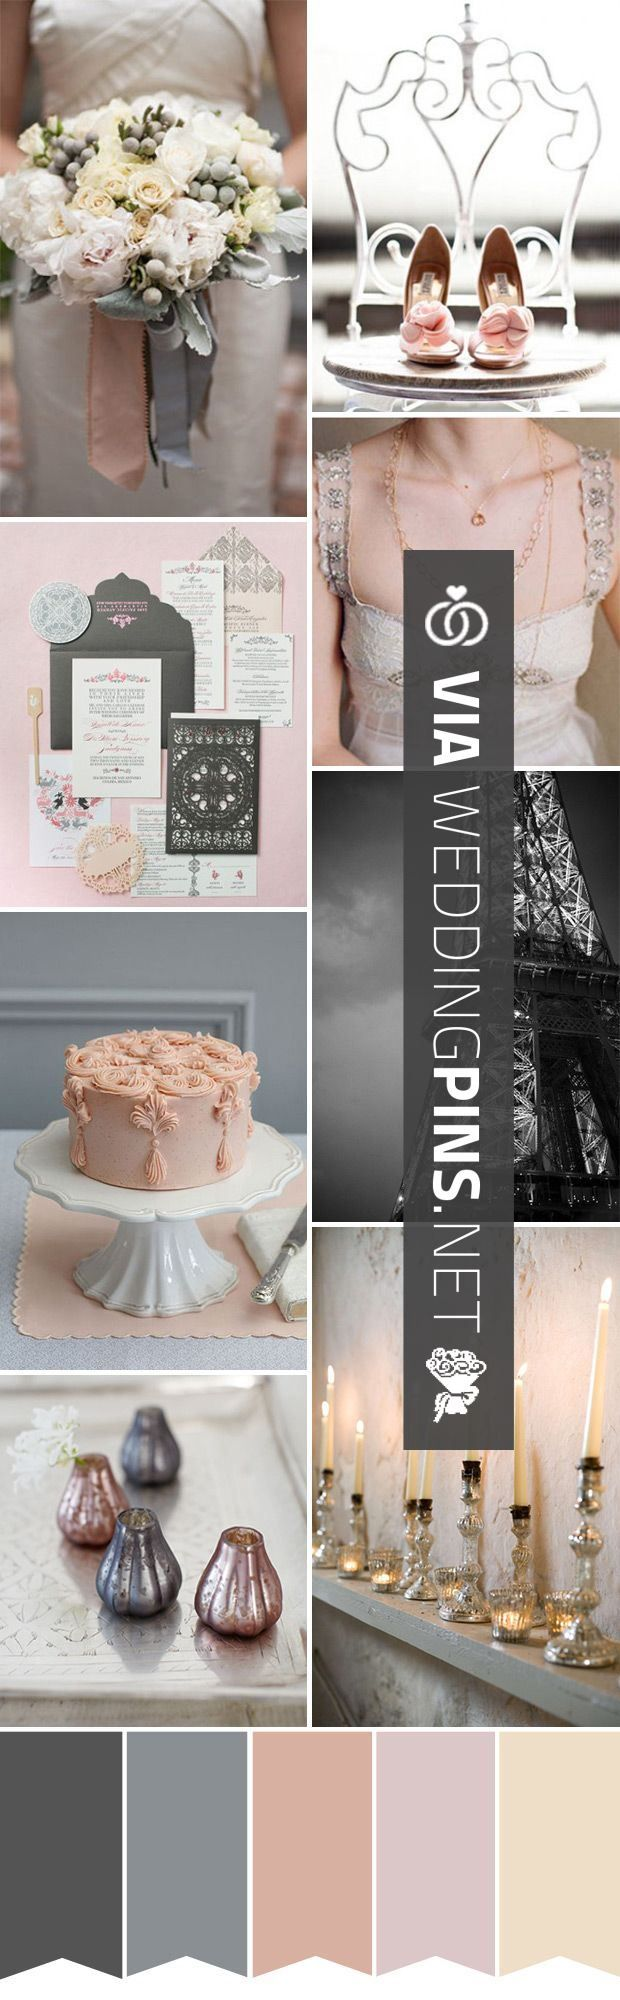 So cool - Wedding Colour Schemes 2017 - Chic French wedding inspiration - pale…